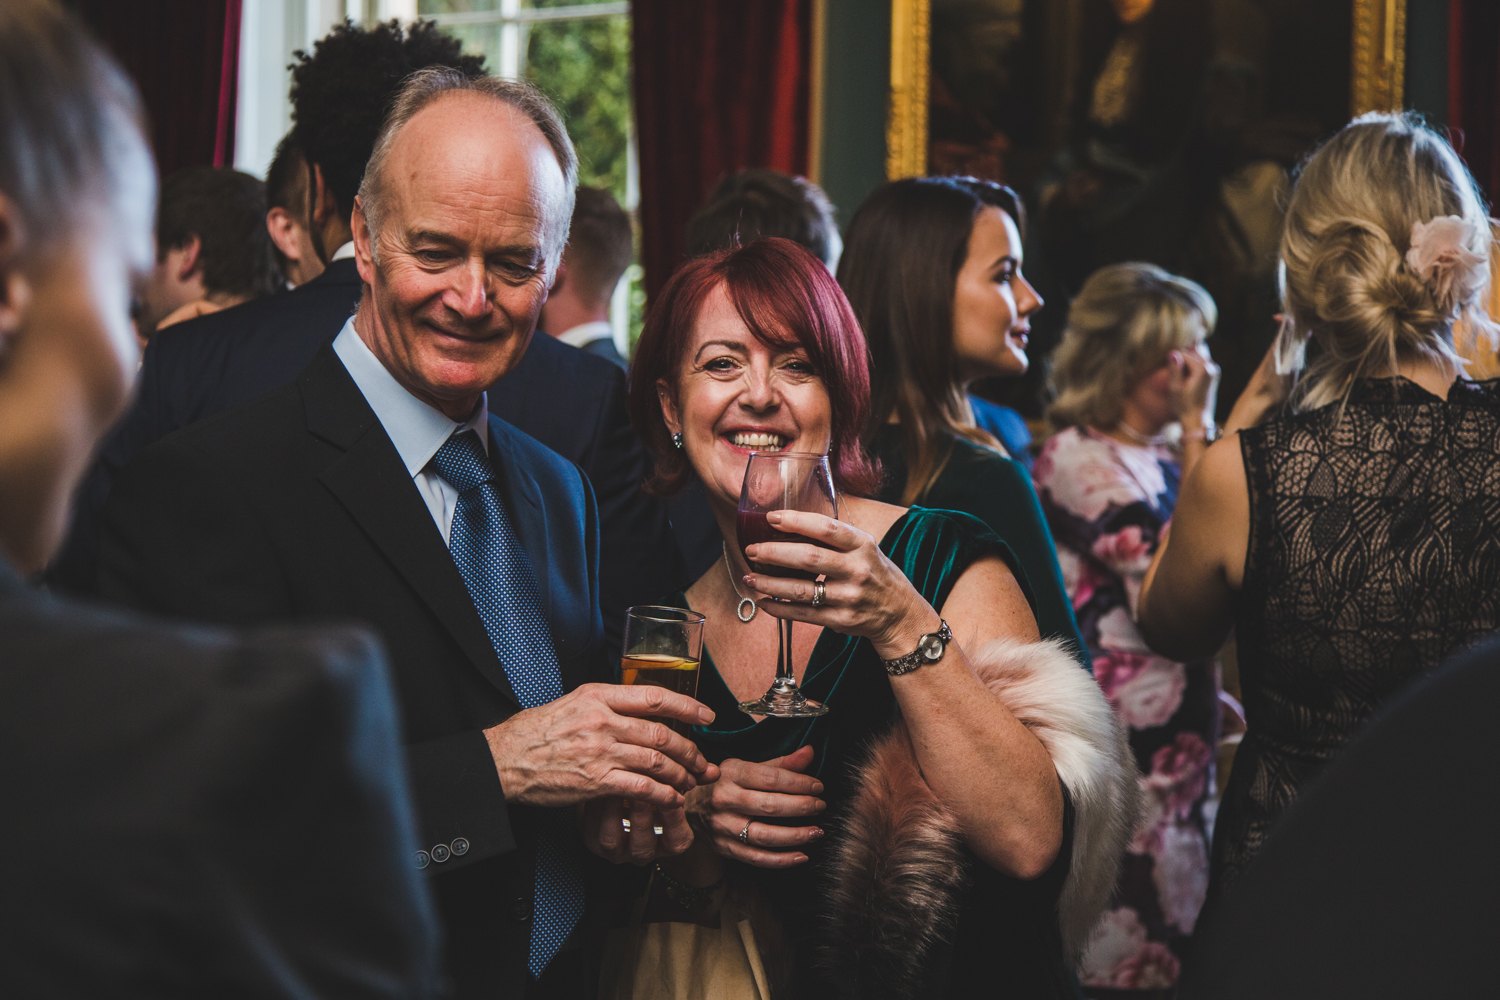 prestwold hall wedding photography-52.jpg